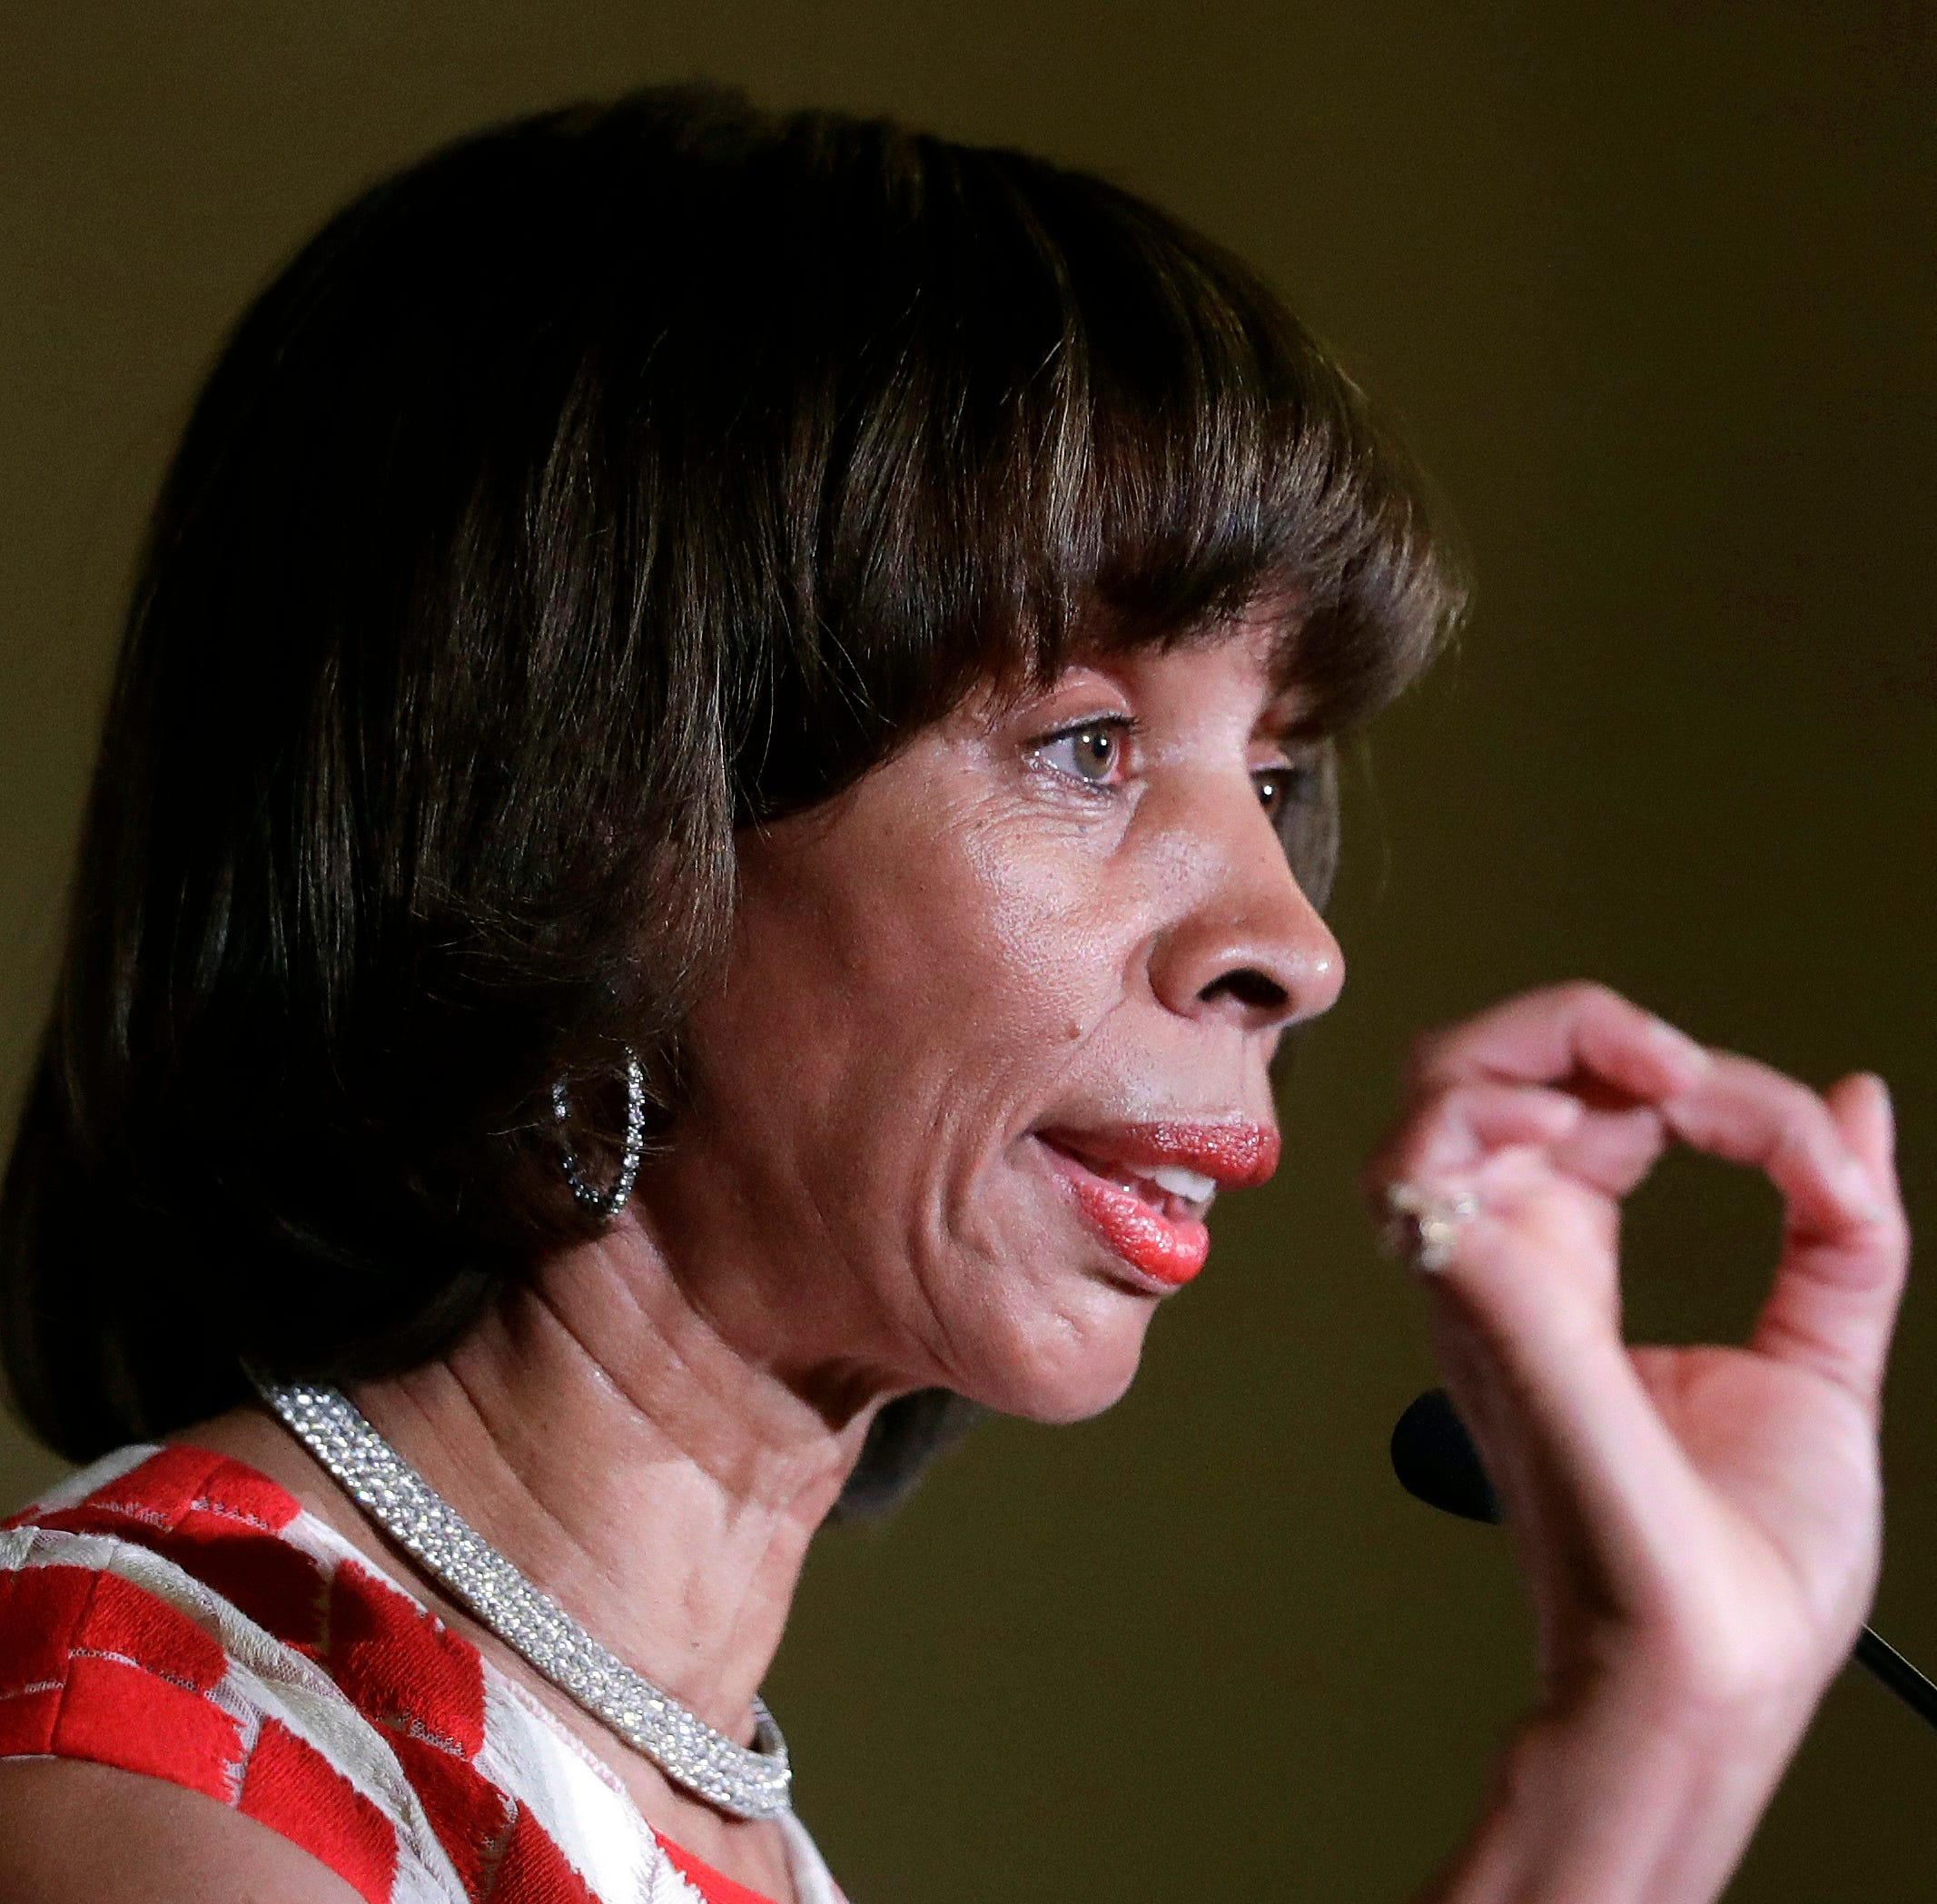 'For the good of the city': Maryland governor calls on Baltimore mayor to resign after FBI raids